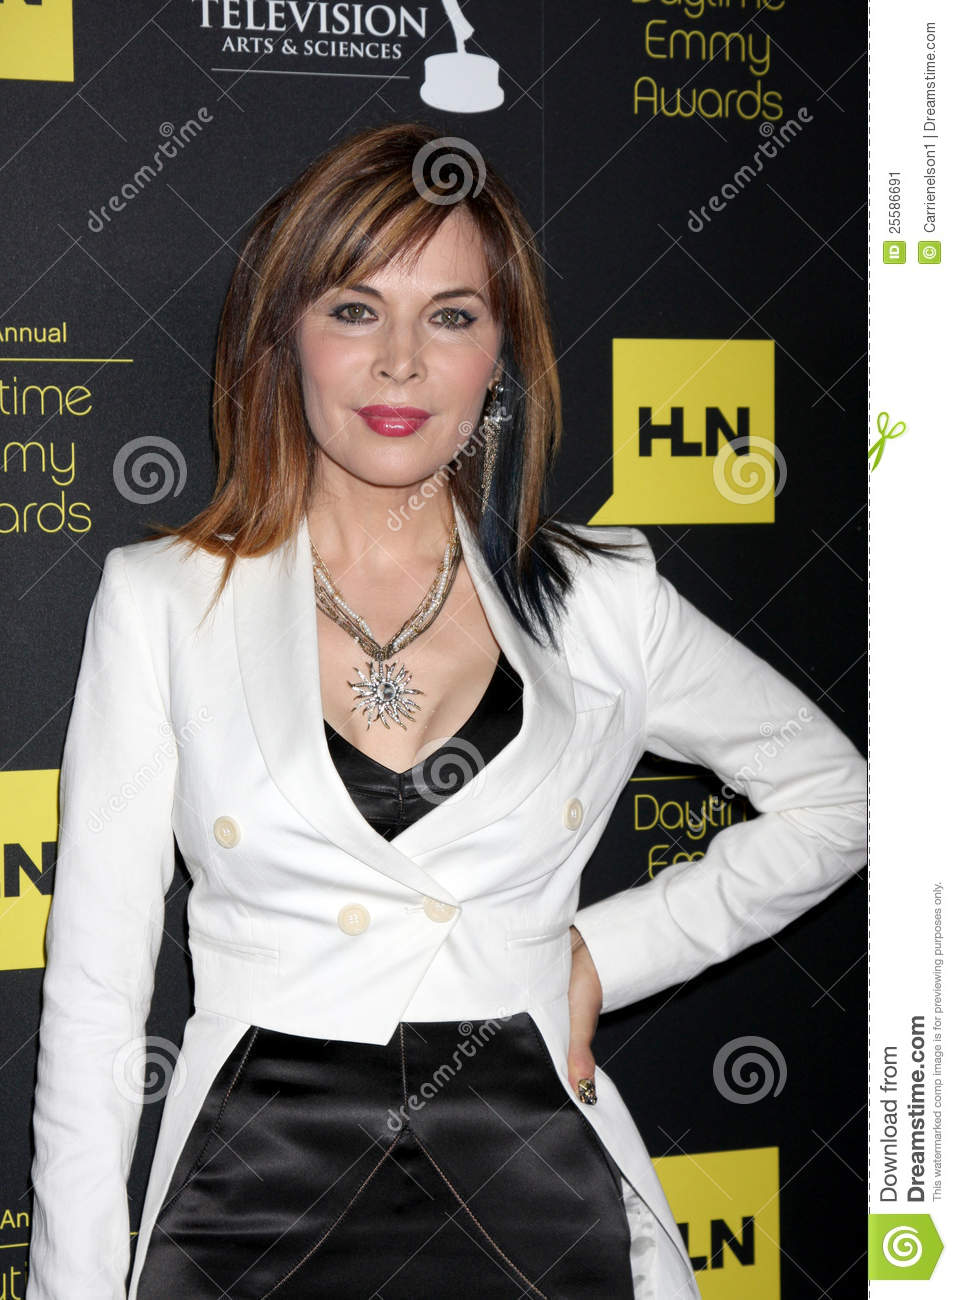 lauren koslow skin carelauren koslow hairstyles, lauren koslow husband, lauren koslow twitter, lauren koslow instagram, lauren koslow salary, lauren koslow 2016, lauren koslow bio, lauren koslow daughter, lauren koslow pictures, lauren koslow 2017, lauren koslow family, lauren koslow images, lauren koslow net worth, lauren koslow skin care, lauren koslow imdb, lauren koslow photos, lauren koslow wikipedia, lauren koslow blue streaked hair, lauren koslow, lauren koslow age